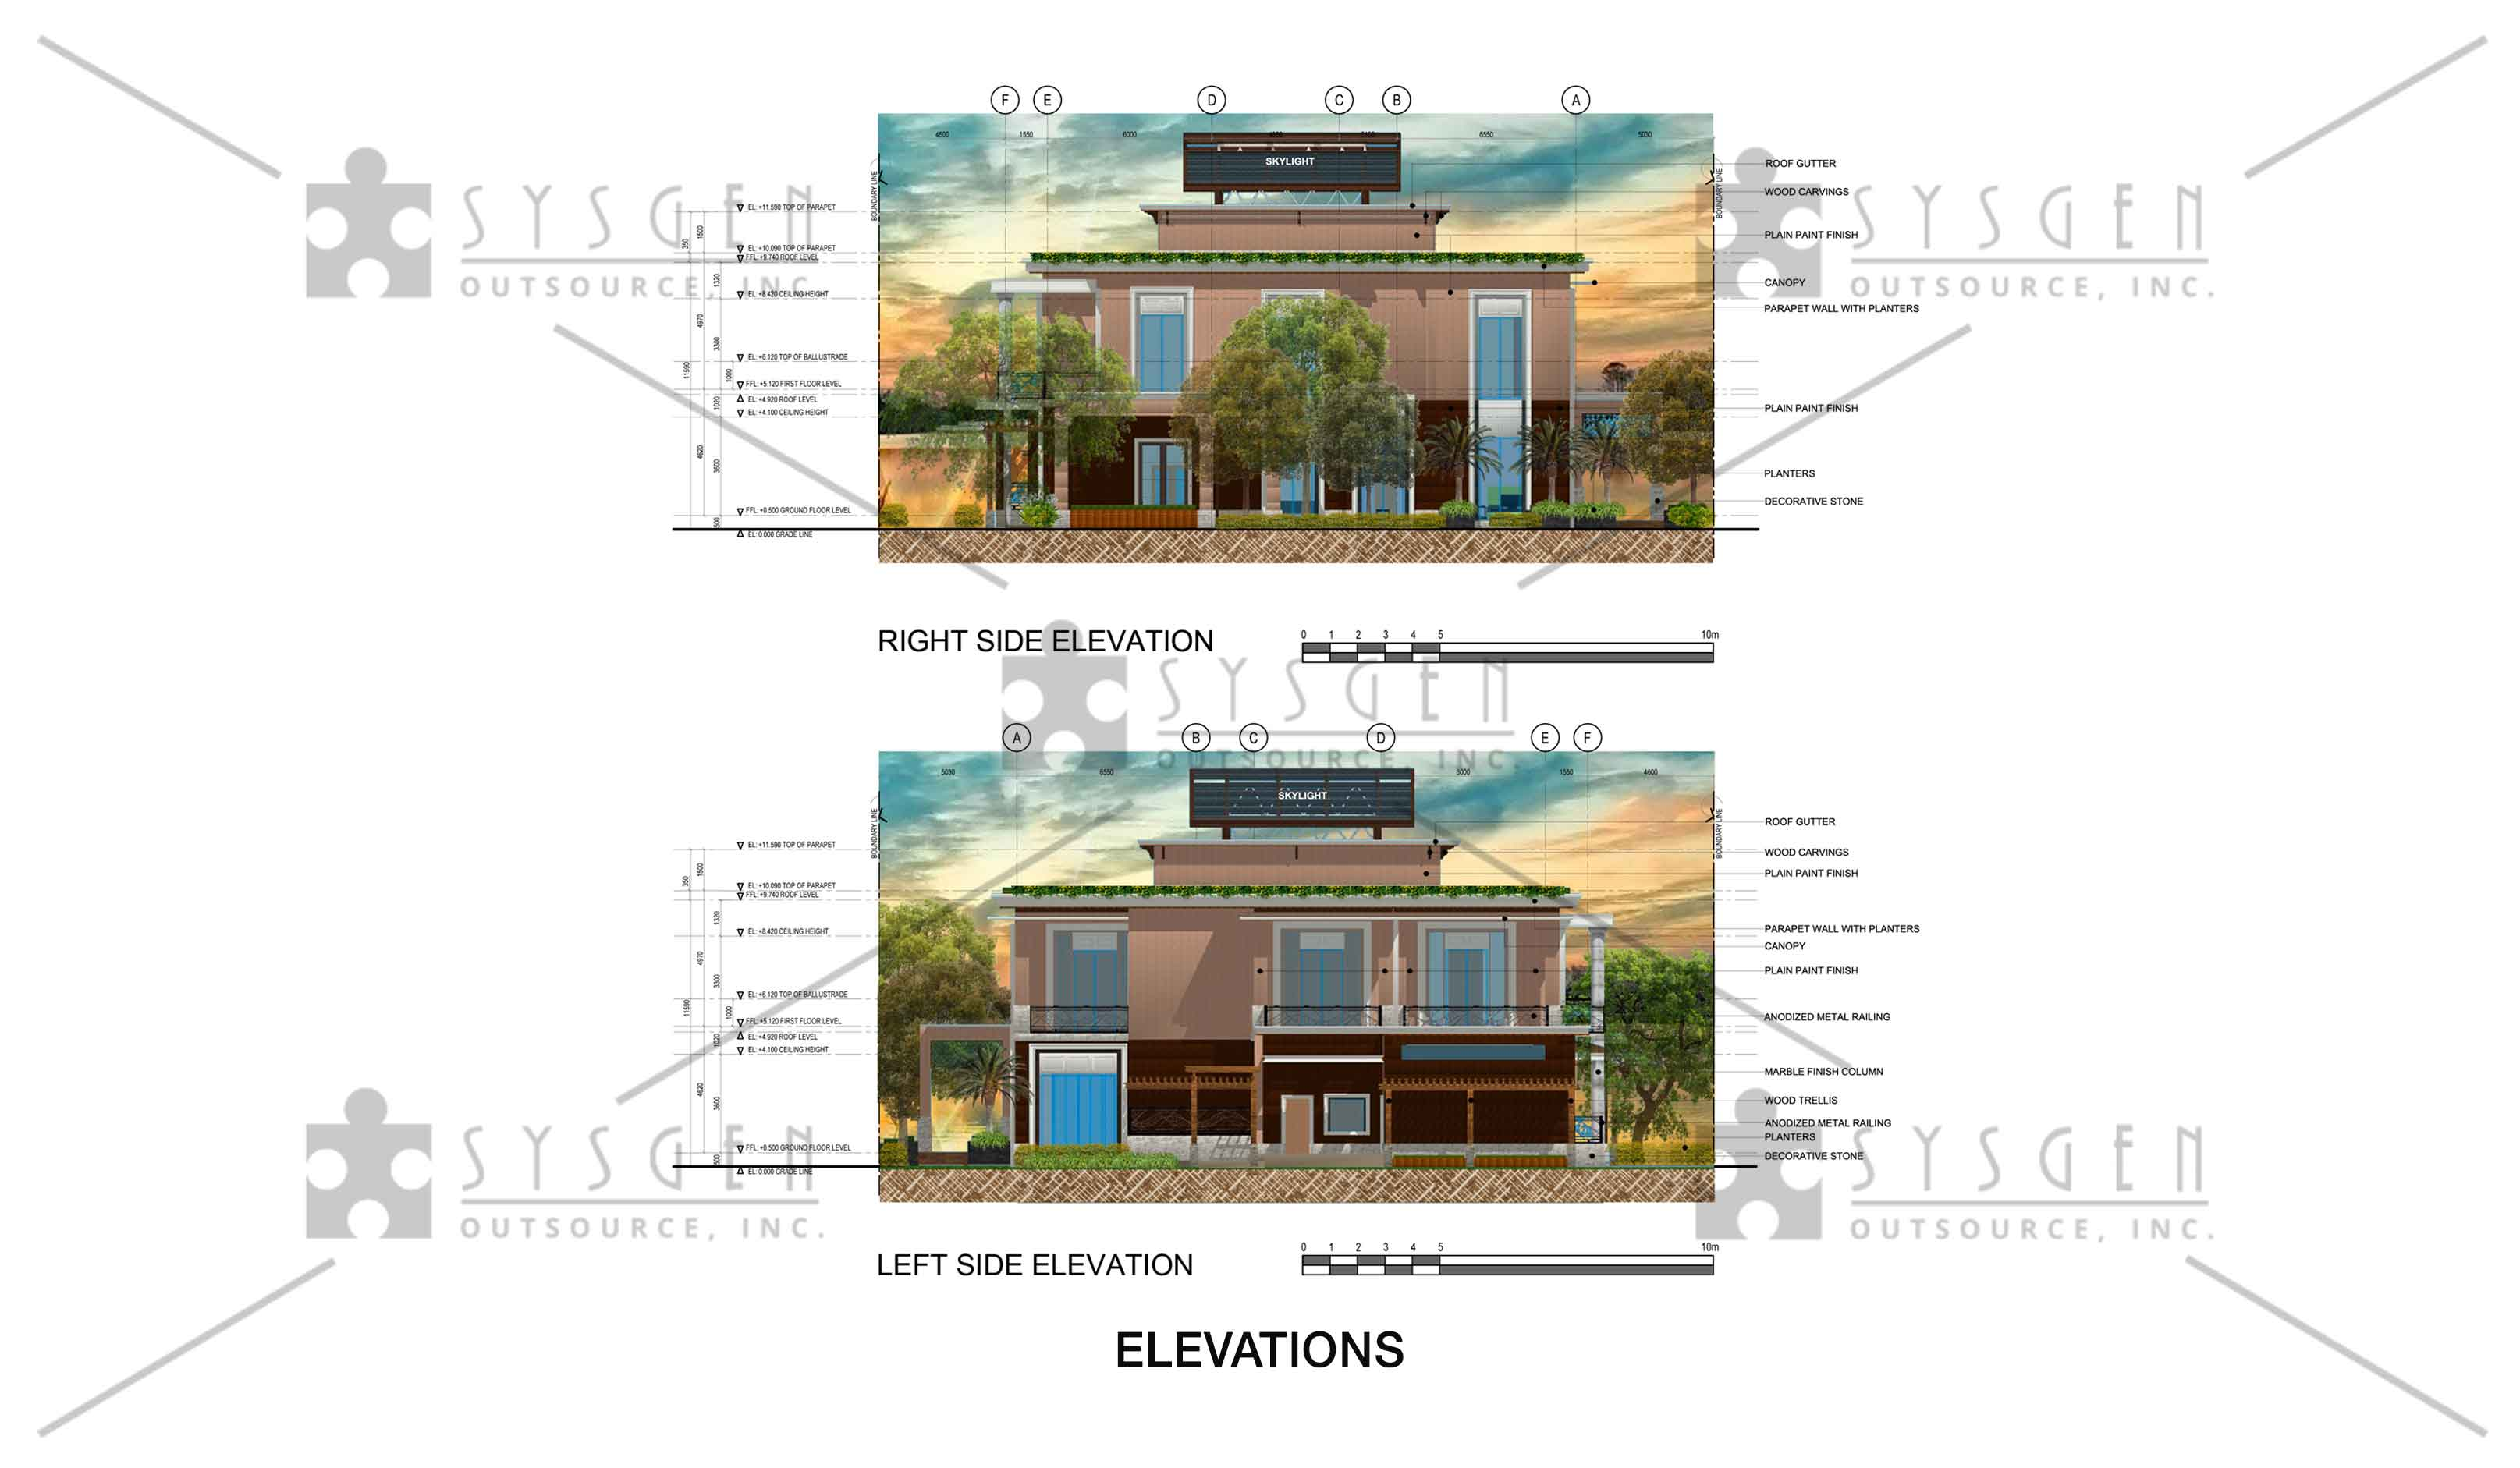 sysgen-outsource-cad-outsourcing-services-sketch-up-resi_villa-katnis9